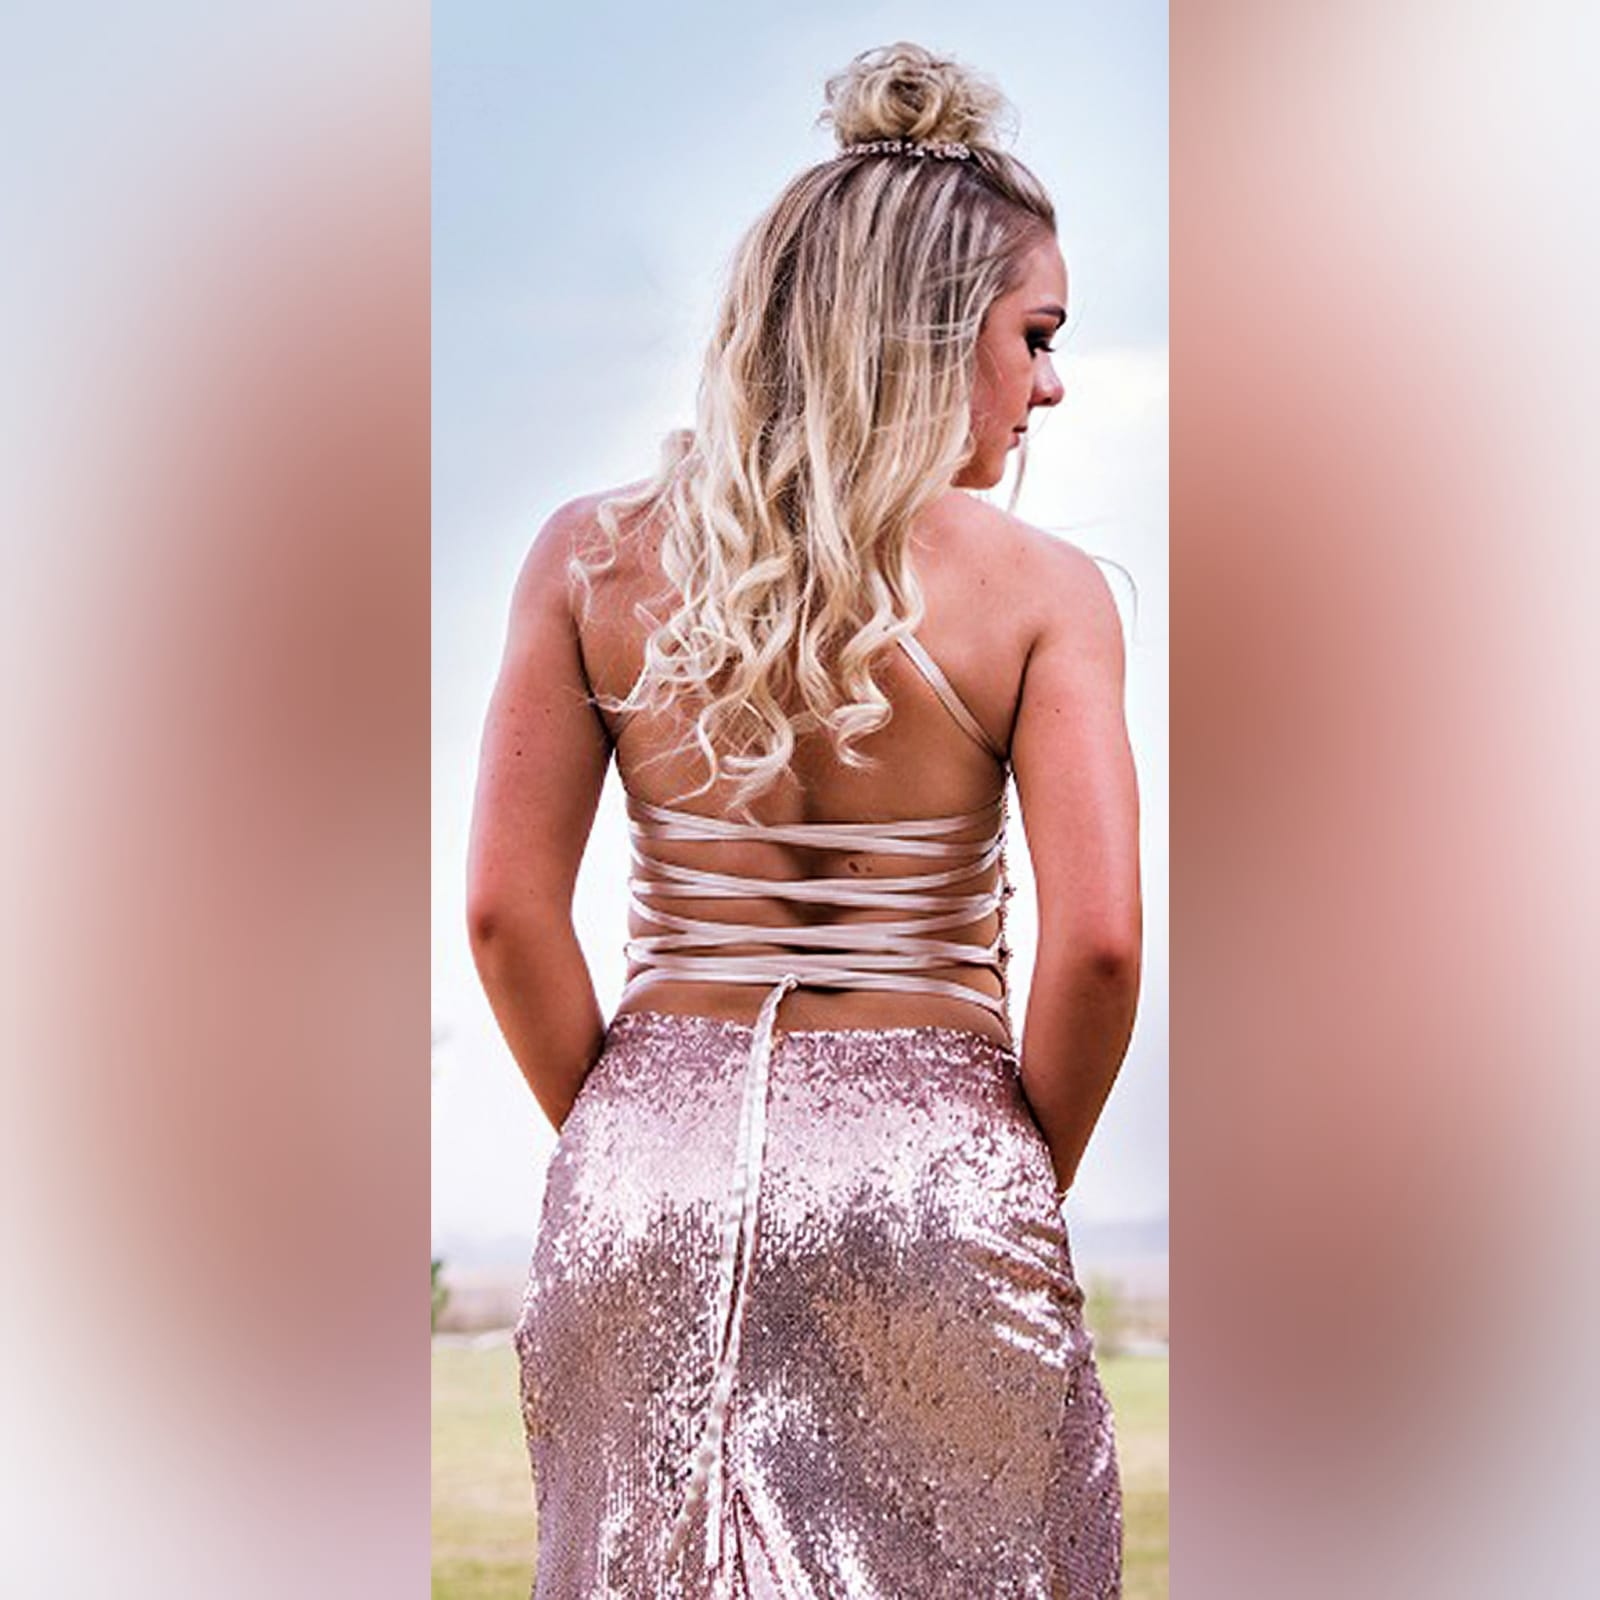 Rose gold sequins beaded matric dance dress with a beaded bodice 2 rose gold sequins beaded matric dance dress with a beaded bodice, an open lace-up back. High slit and a train.